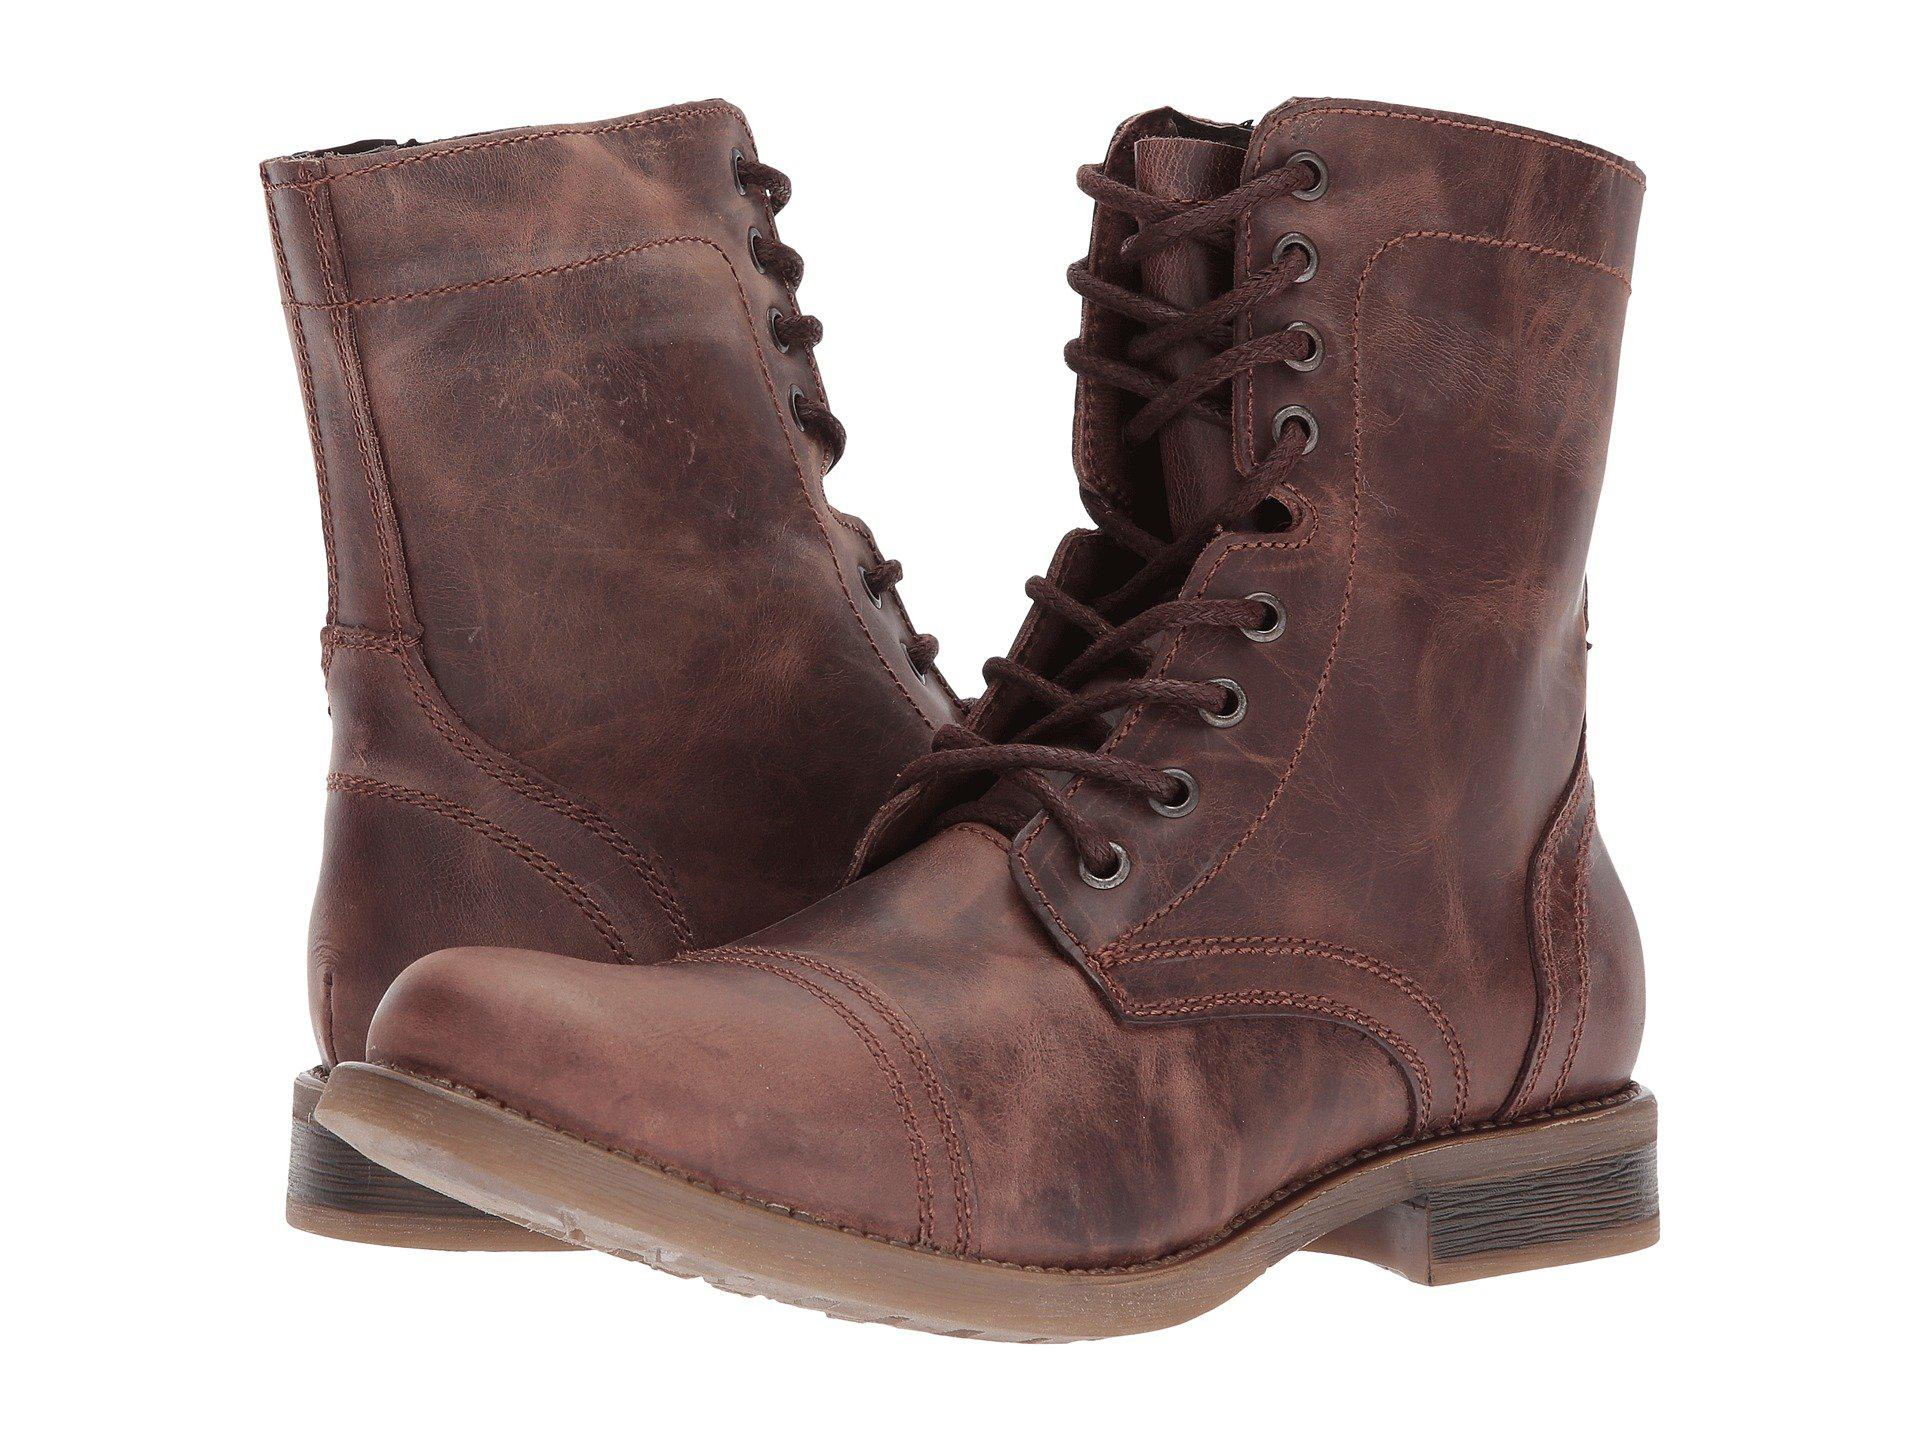 9d998b51e08 Lyst - Steve Madden Troopah-c in Brown for Men - Save 8%